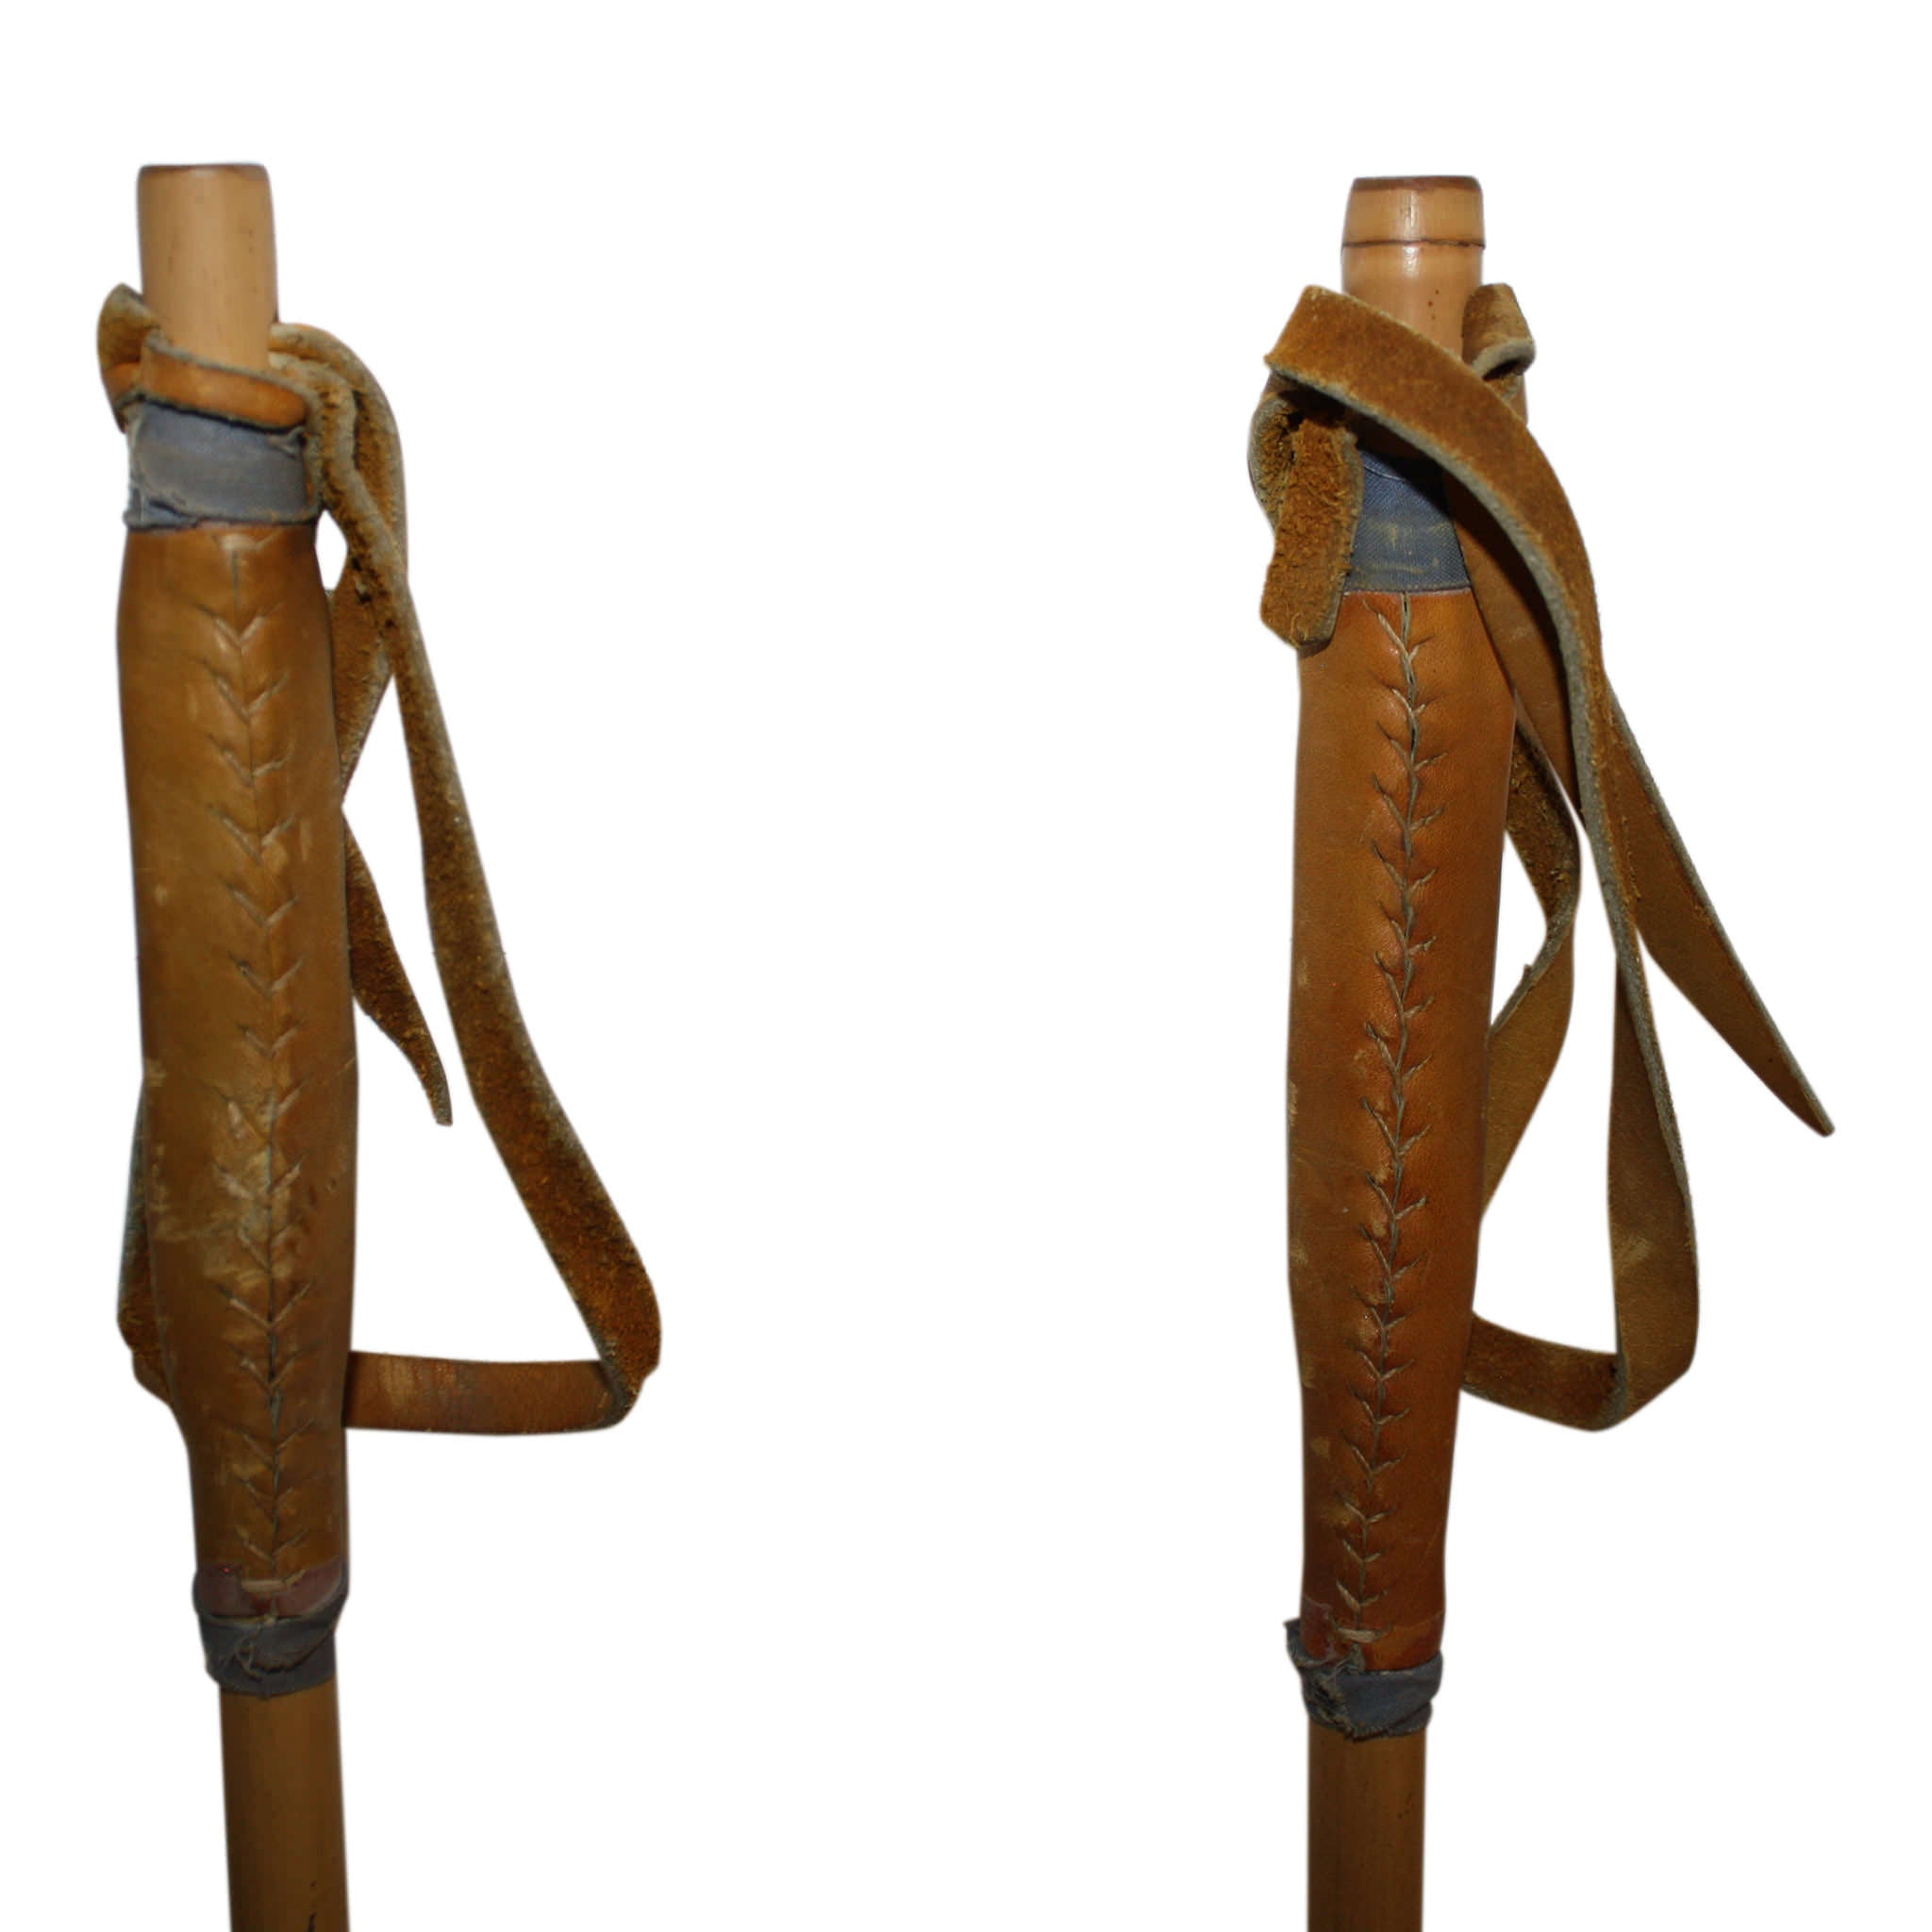 Bamboo Ski Poles with Leather Grips